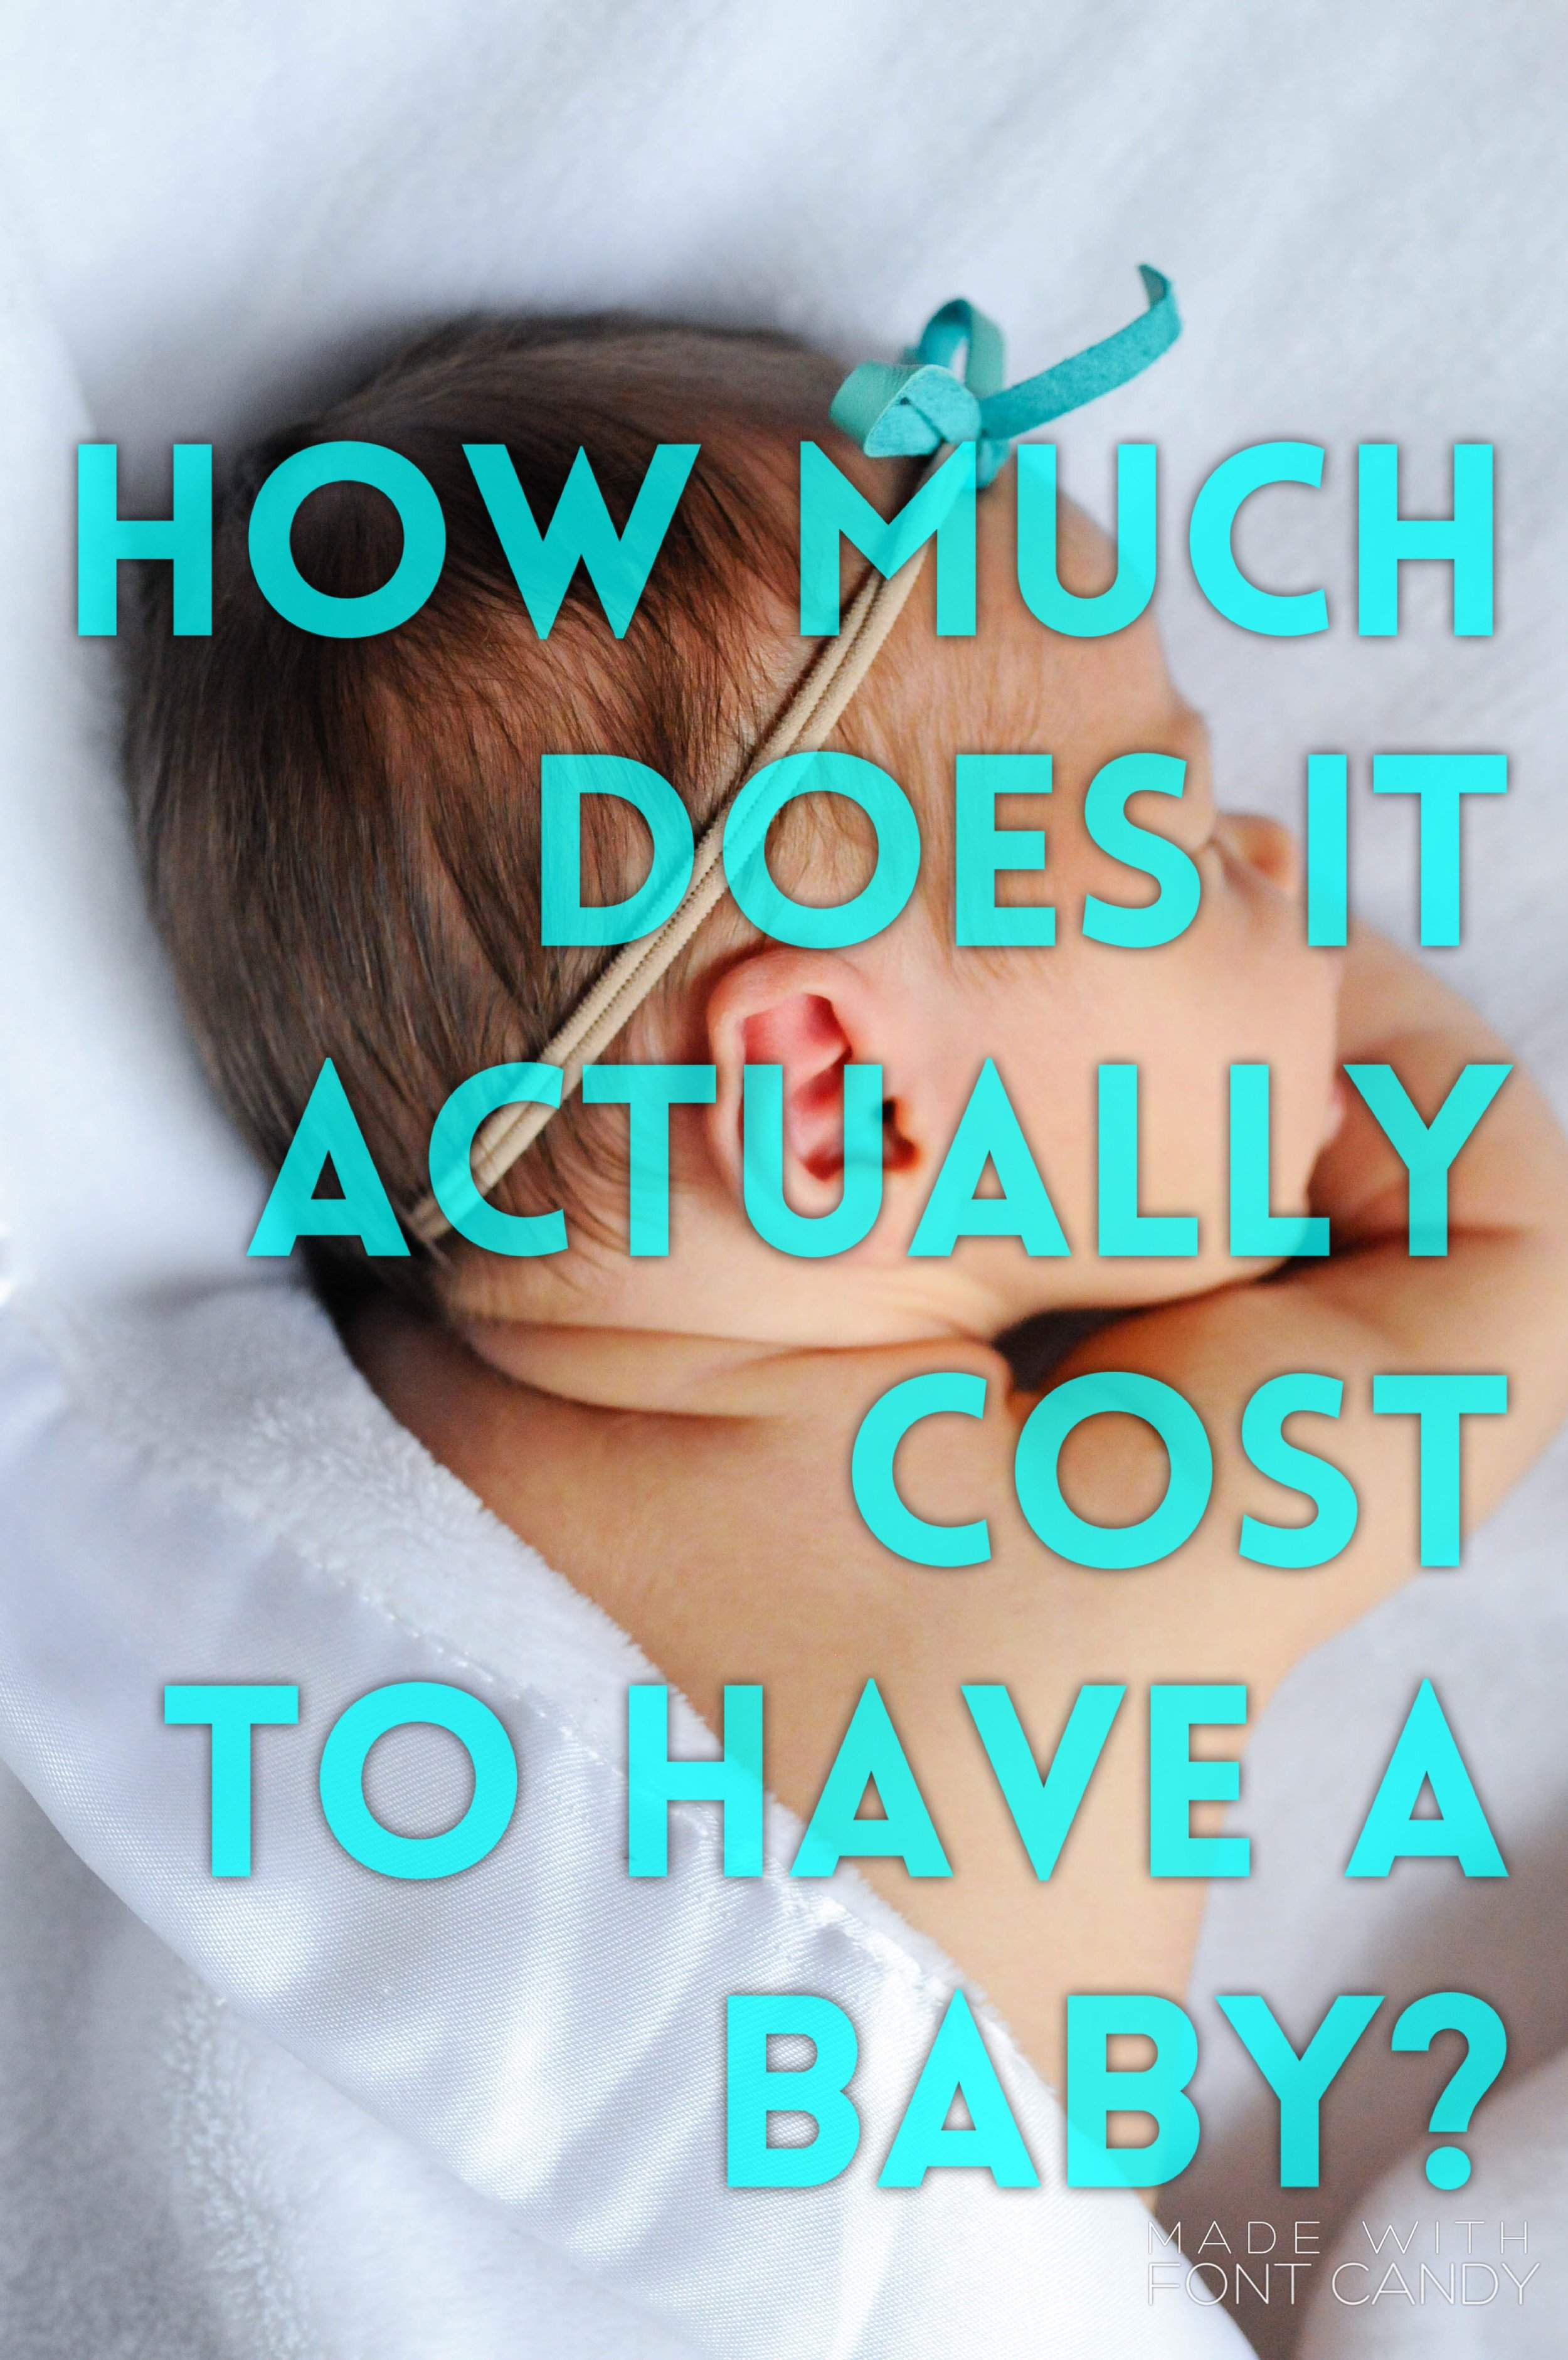 Cast Iron Photography Cost of Having a Baby